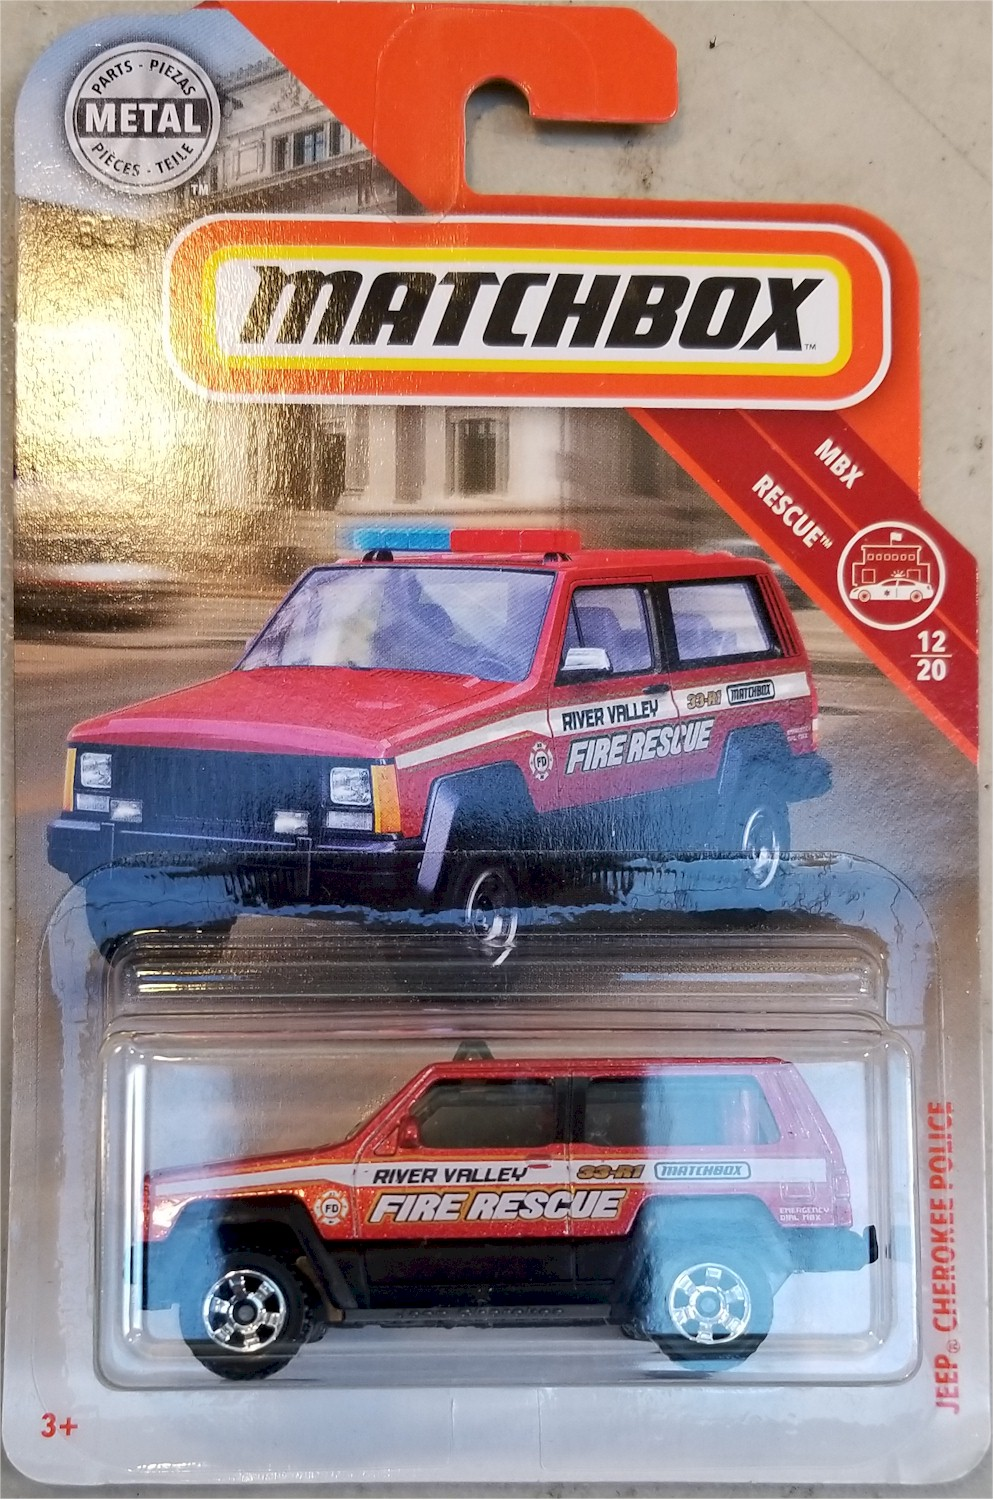 Matchbox 2019 #51 Jeep Cherokee Fire Rescue Police MOC MBX Rescue #12 FYR17